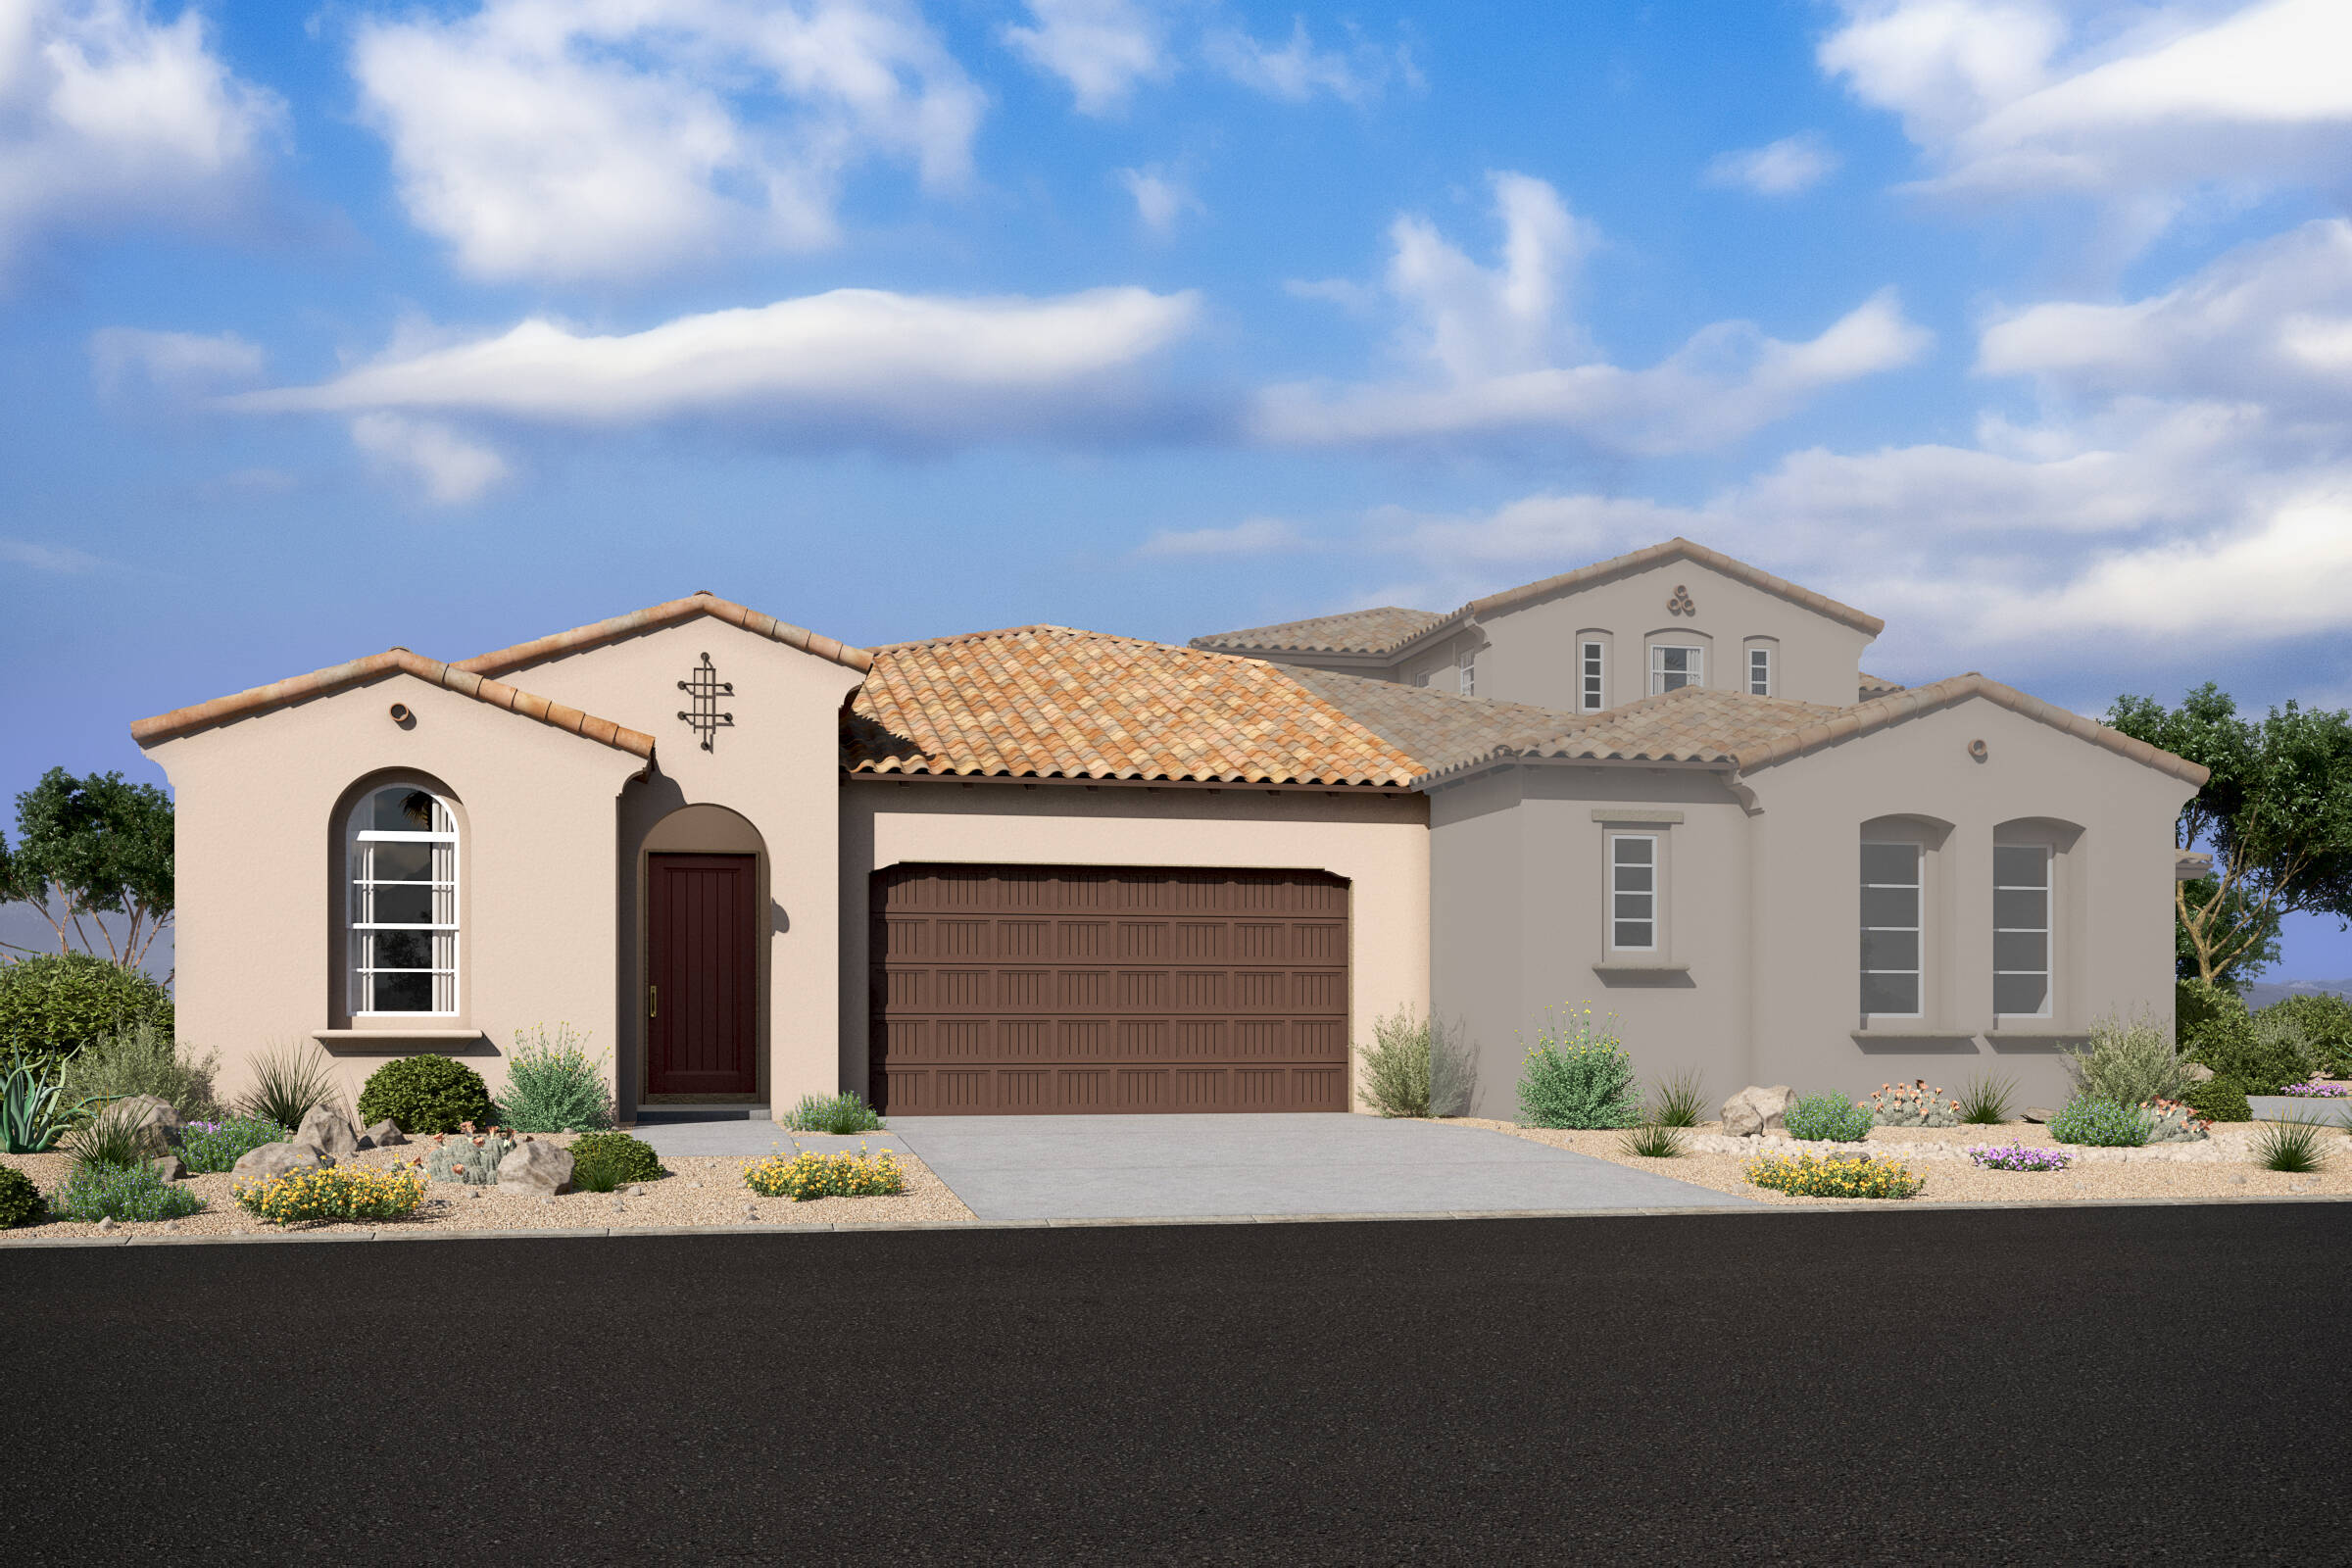 capstone spanish colonial d new homes silverstone with crest